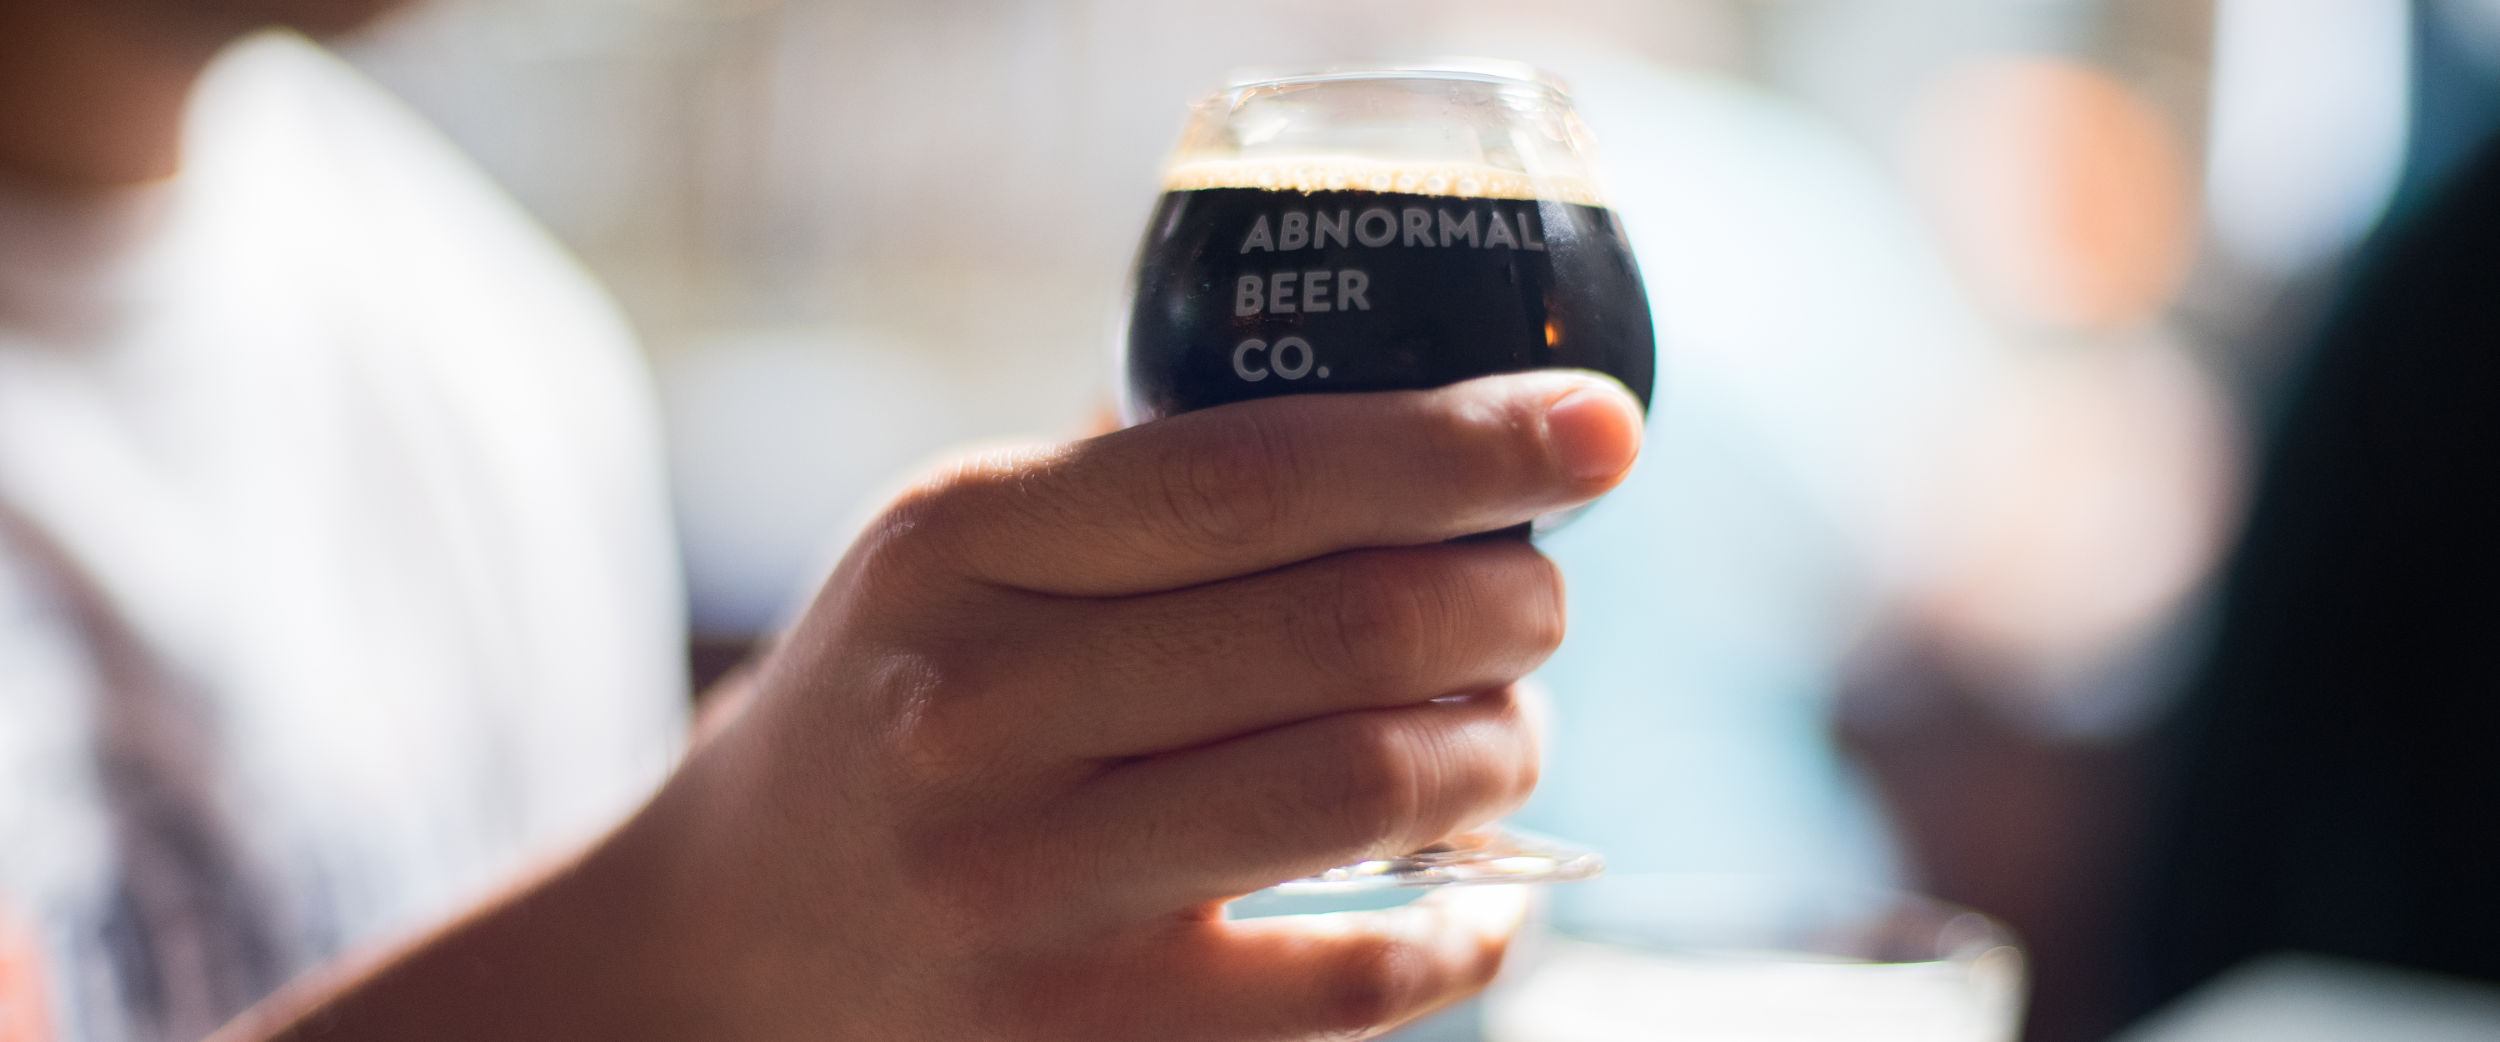 - Abnormal beerambassadors